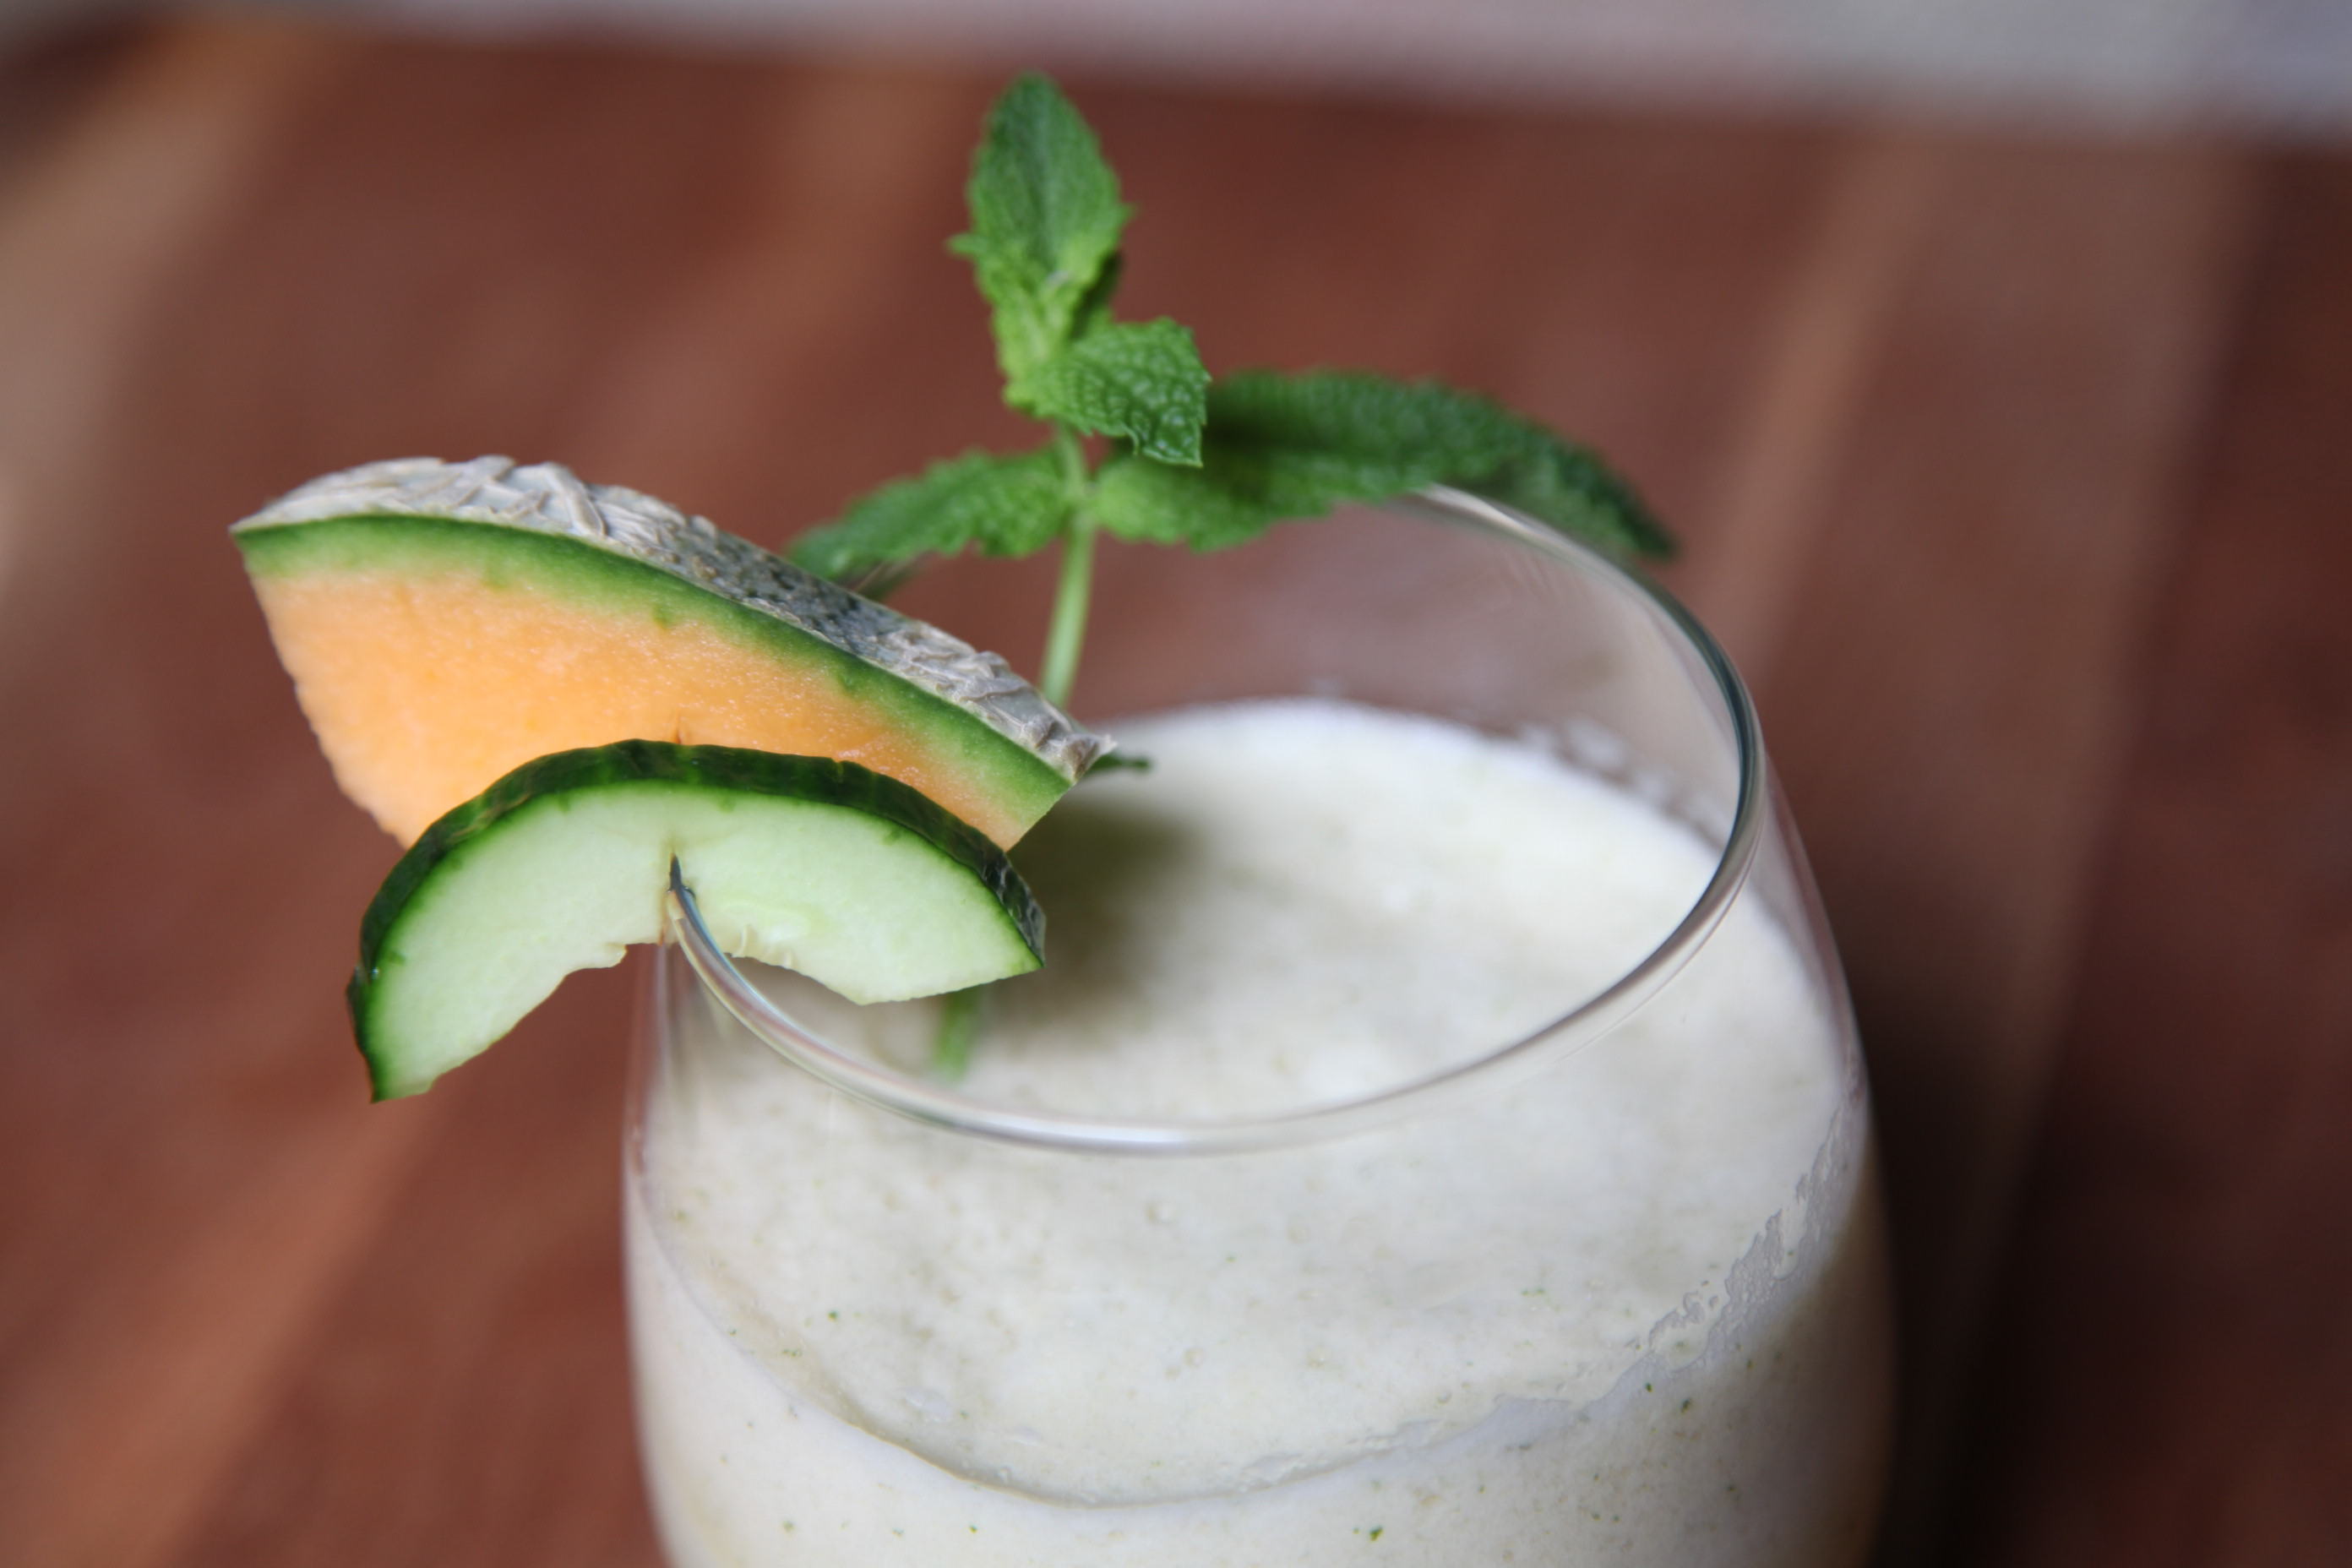 Cuke, Melon & Mint Smoothie | Image by Lady Moon Farms